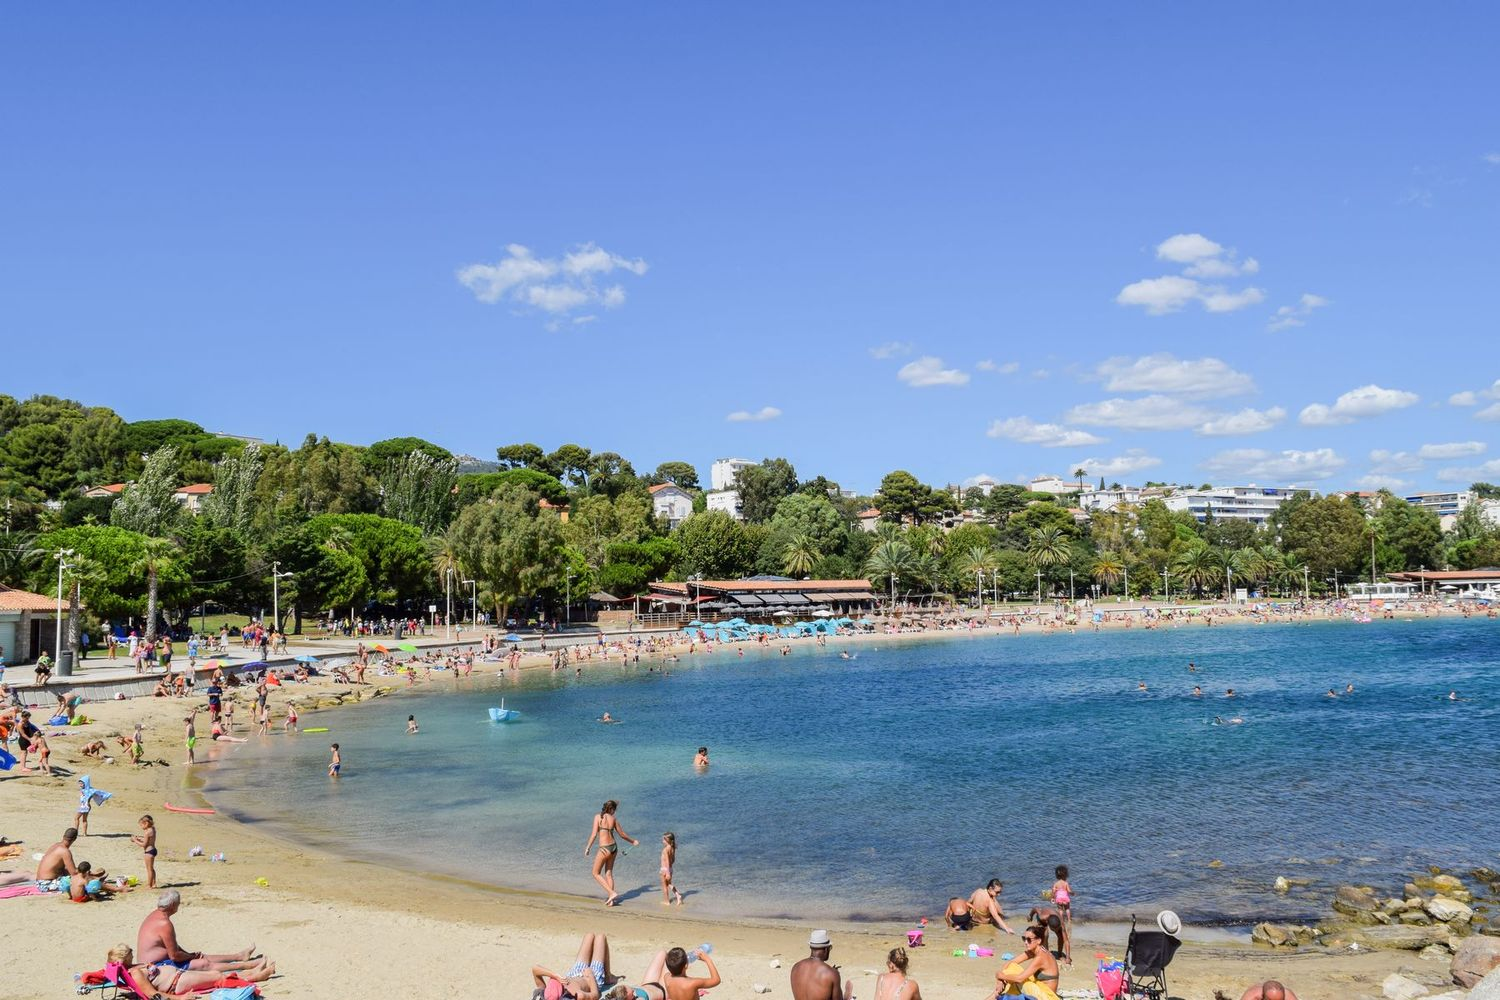 Plage de Mourillon Toulon, France Beaches